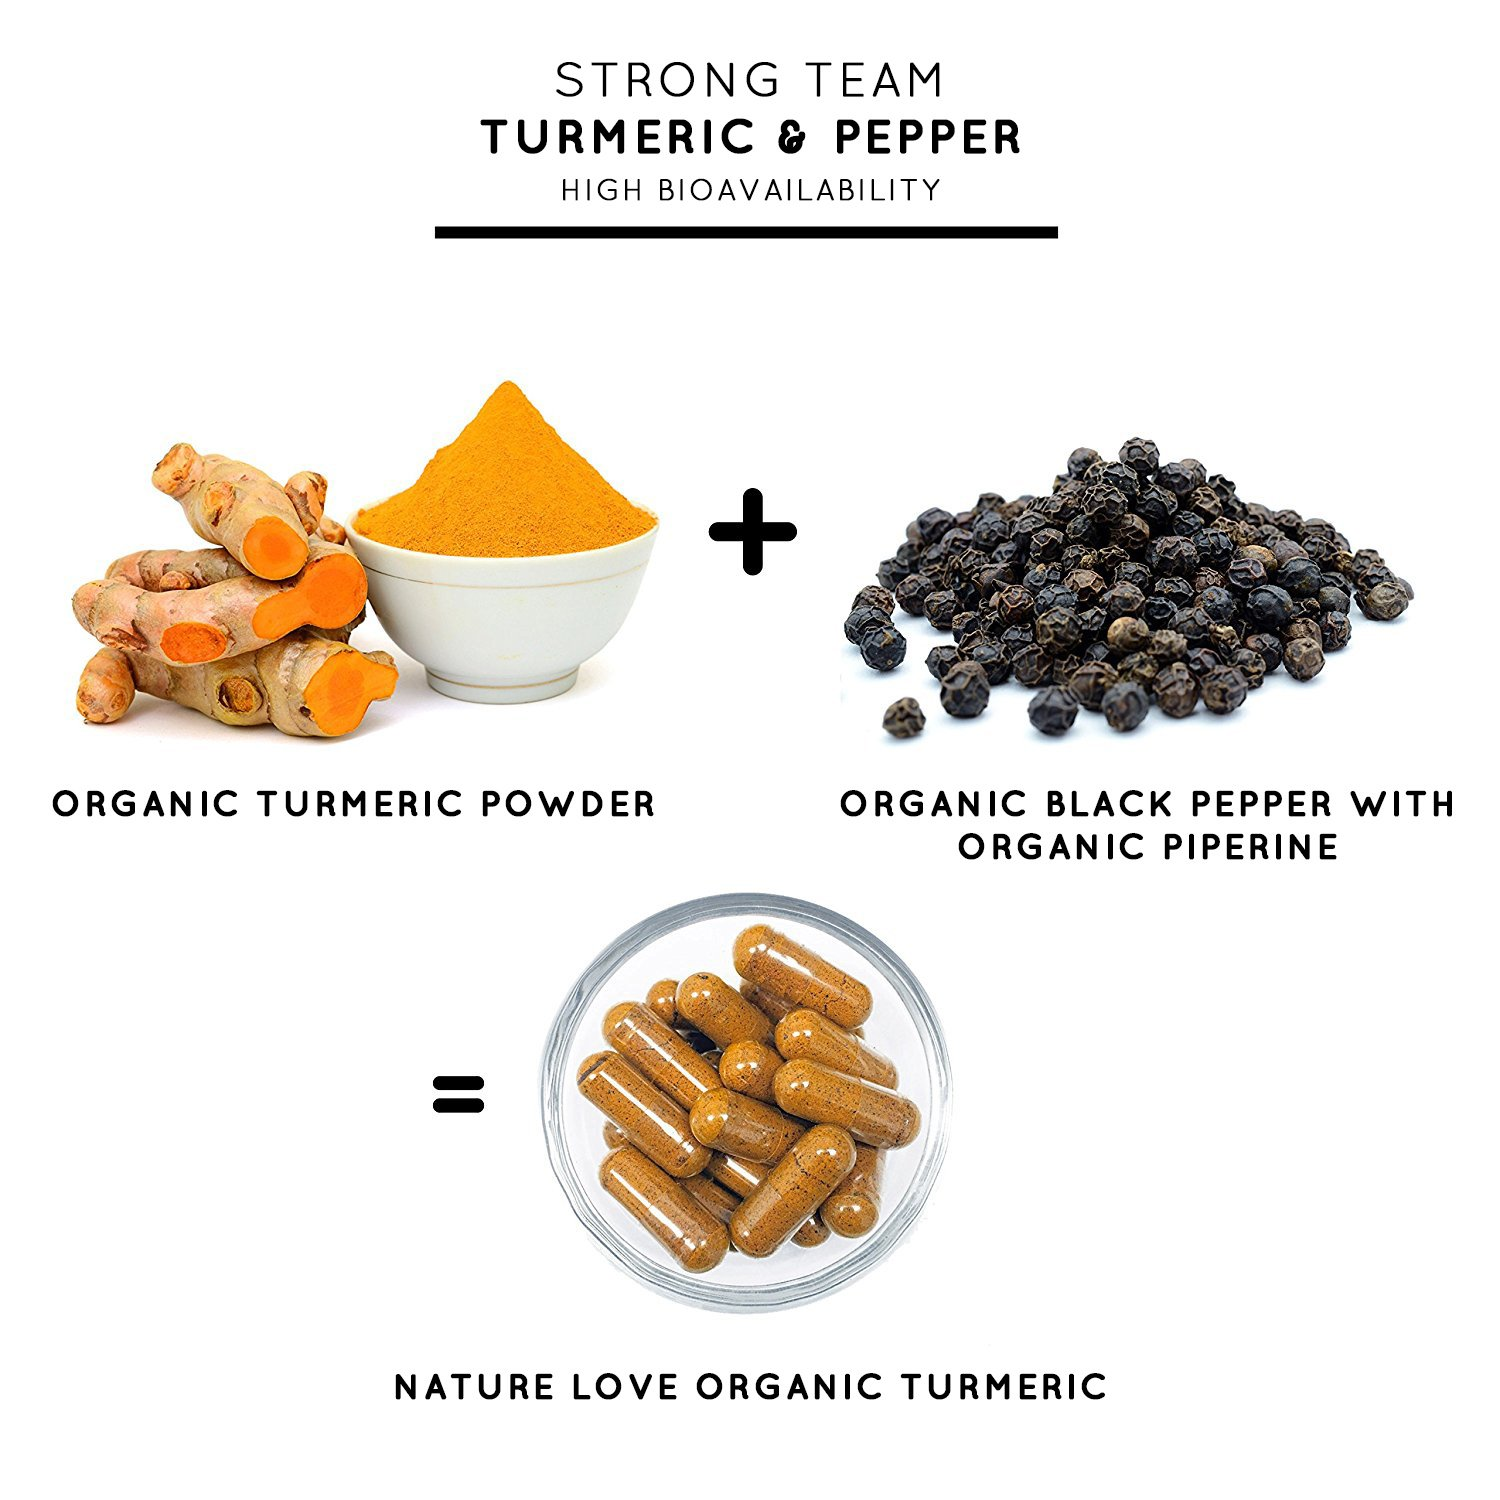 Organic Turmeric Capsules with Curcumin & Black Pepper 3900 mg per daily dose. 240 vegan curcuma capsules. Laboratory tested & certified organic quality. Without magnesium stearate. High strength, vegan, made in Germany